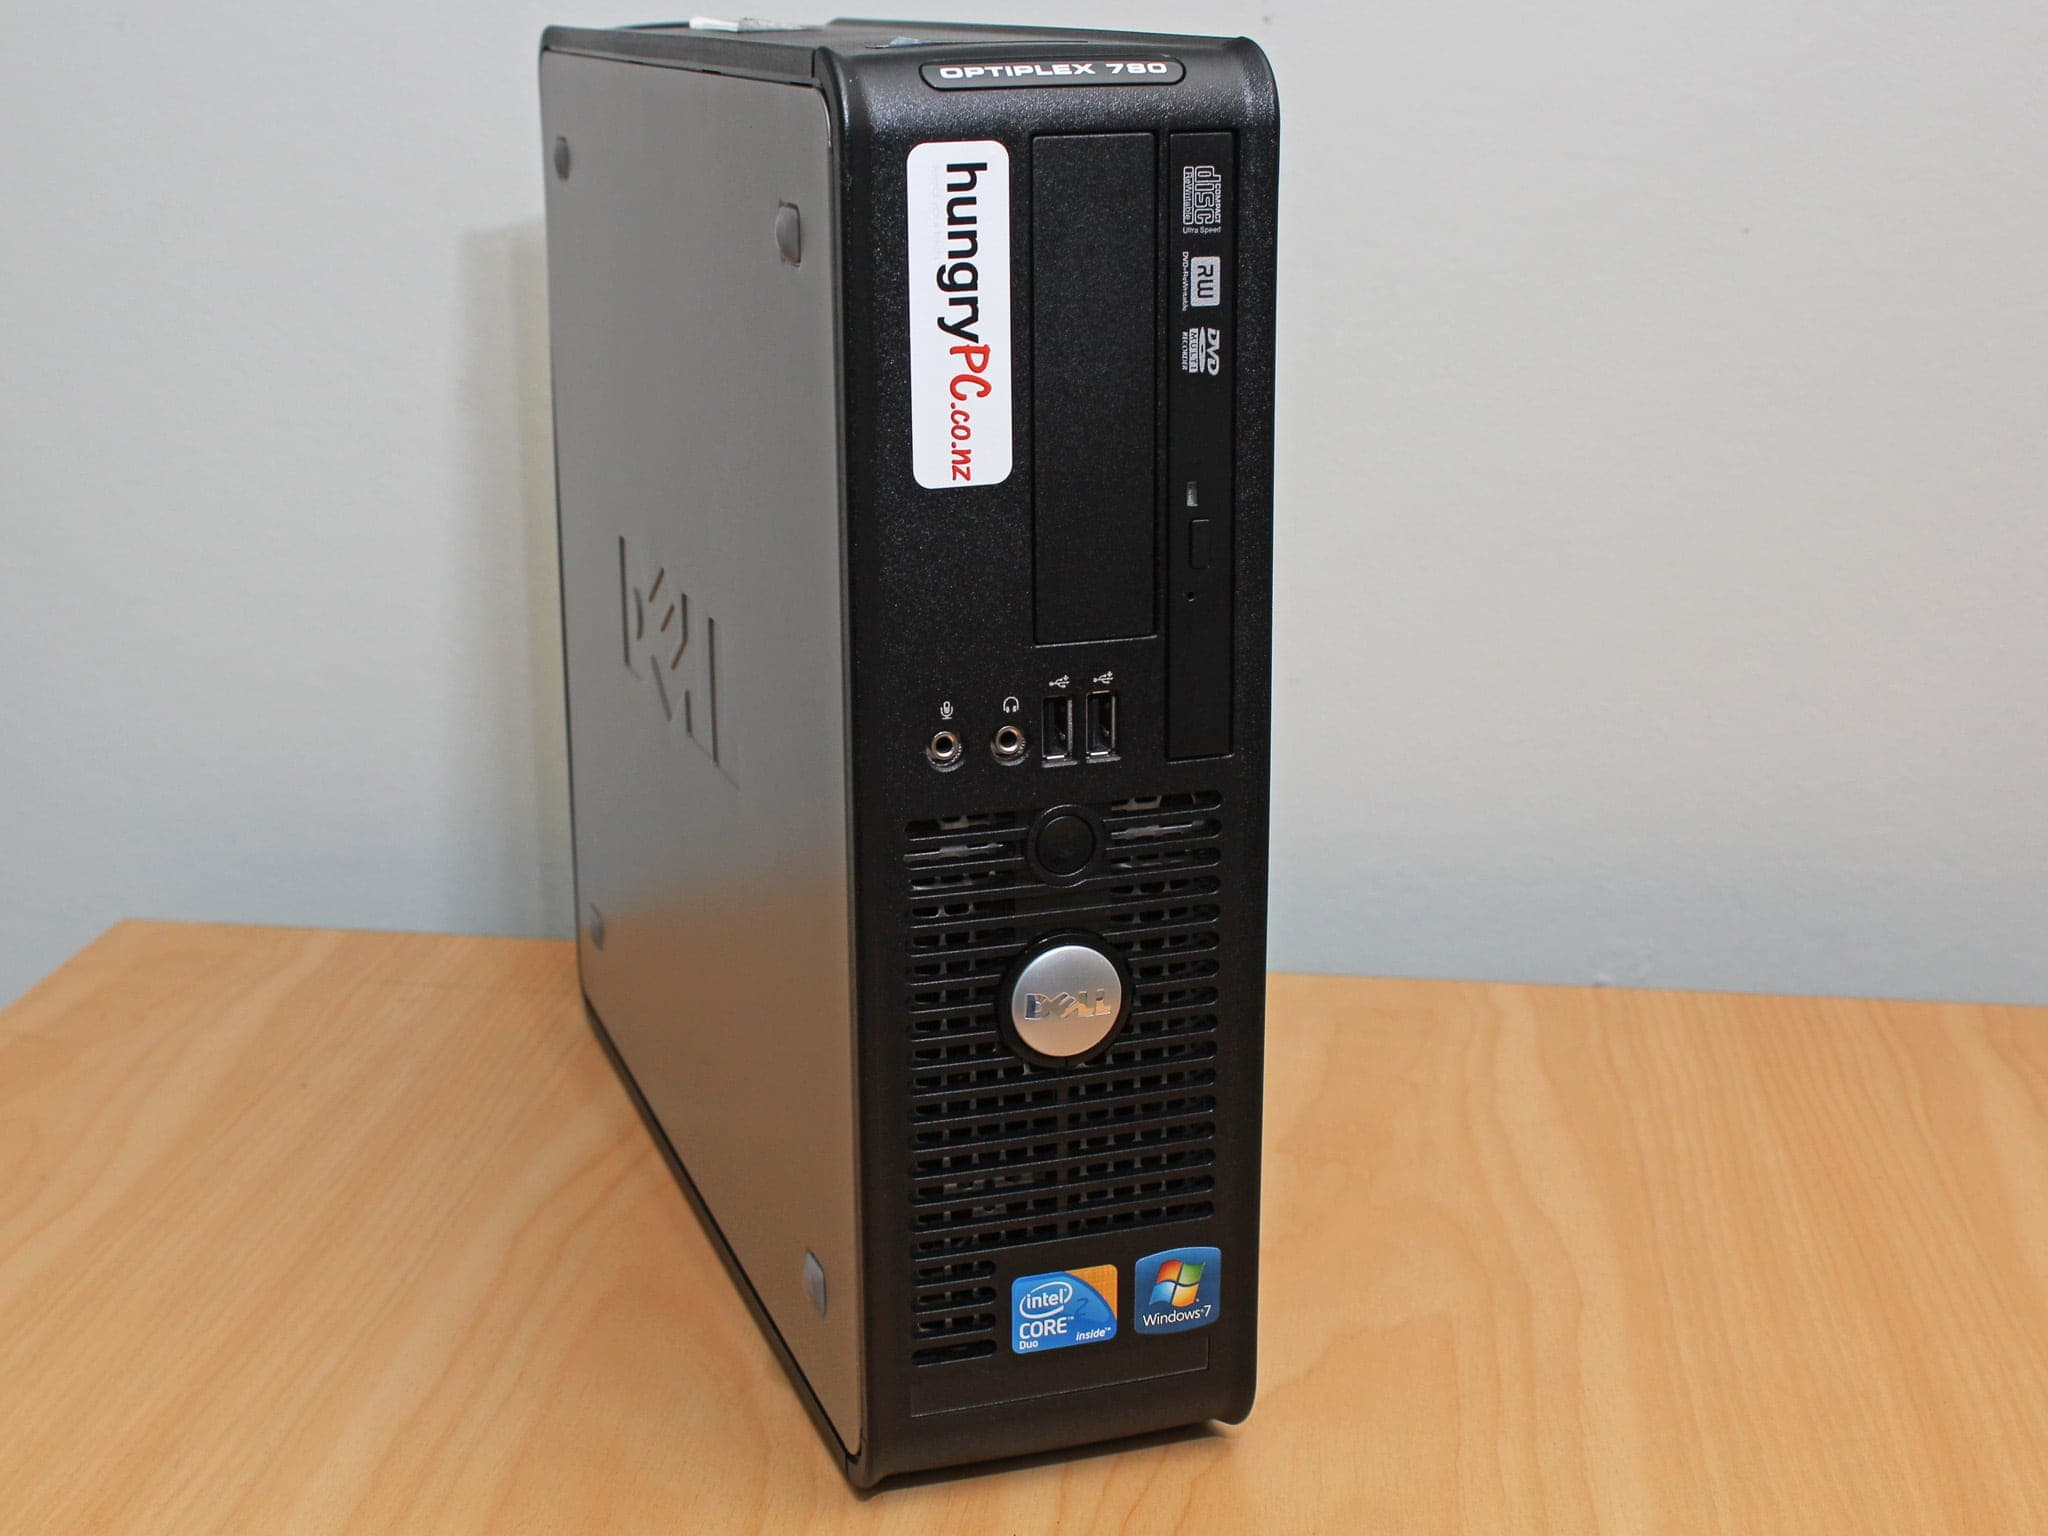 GREAT VALUE Core 2 DUO PC, 4GB RAM, WiFi + Win 10 or 7 PRO! Ideal 4 Home